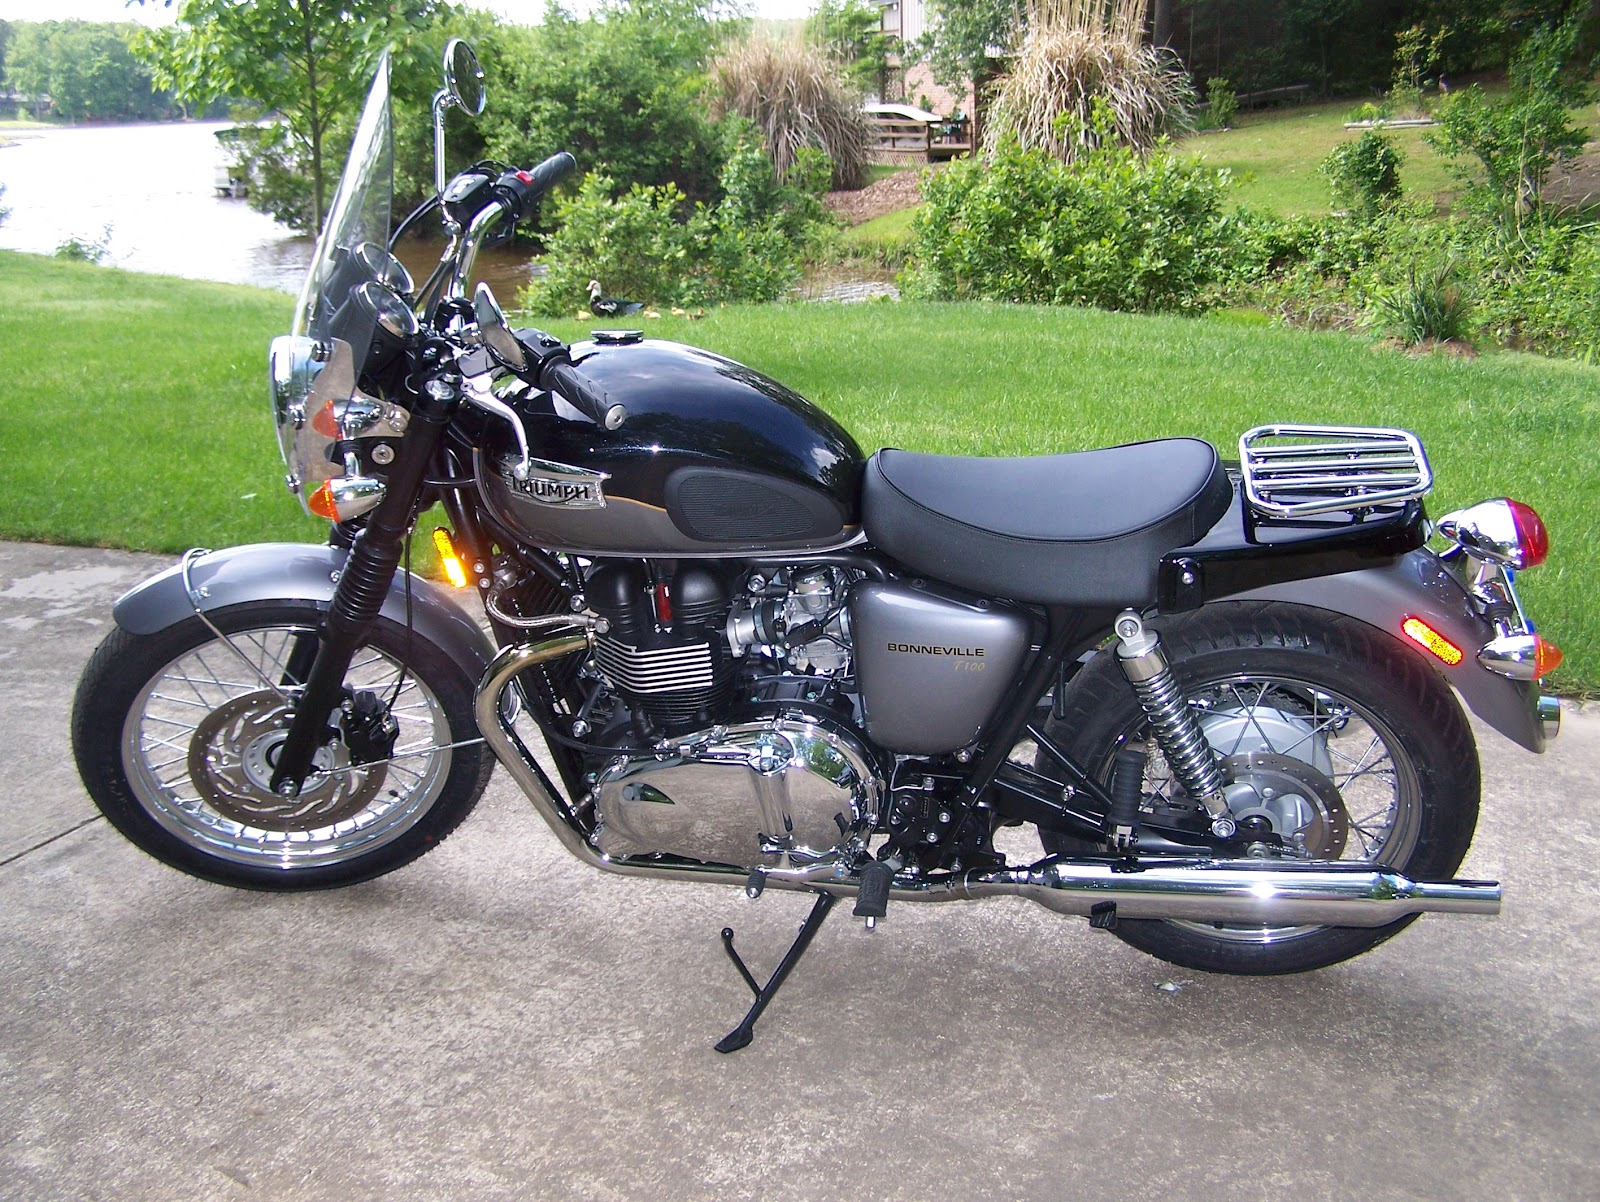 Triumph bonneville t100 single seat